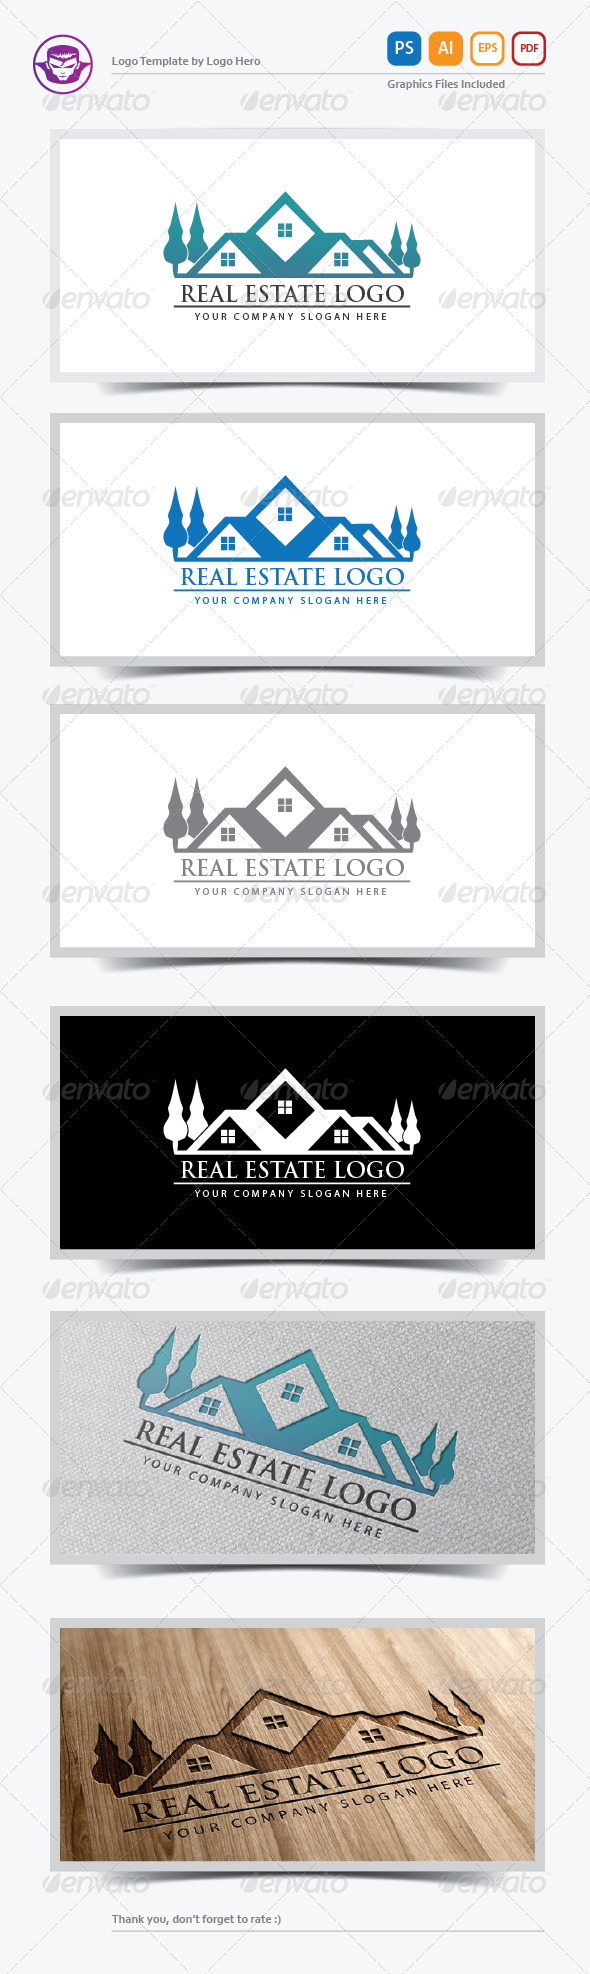 GraphicRiver Real Estate Logo Template V.2 6024774